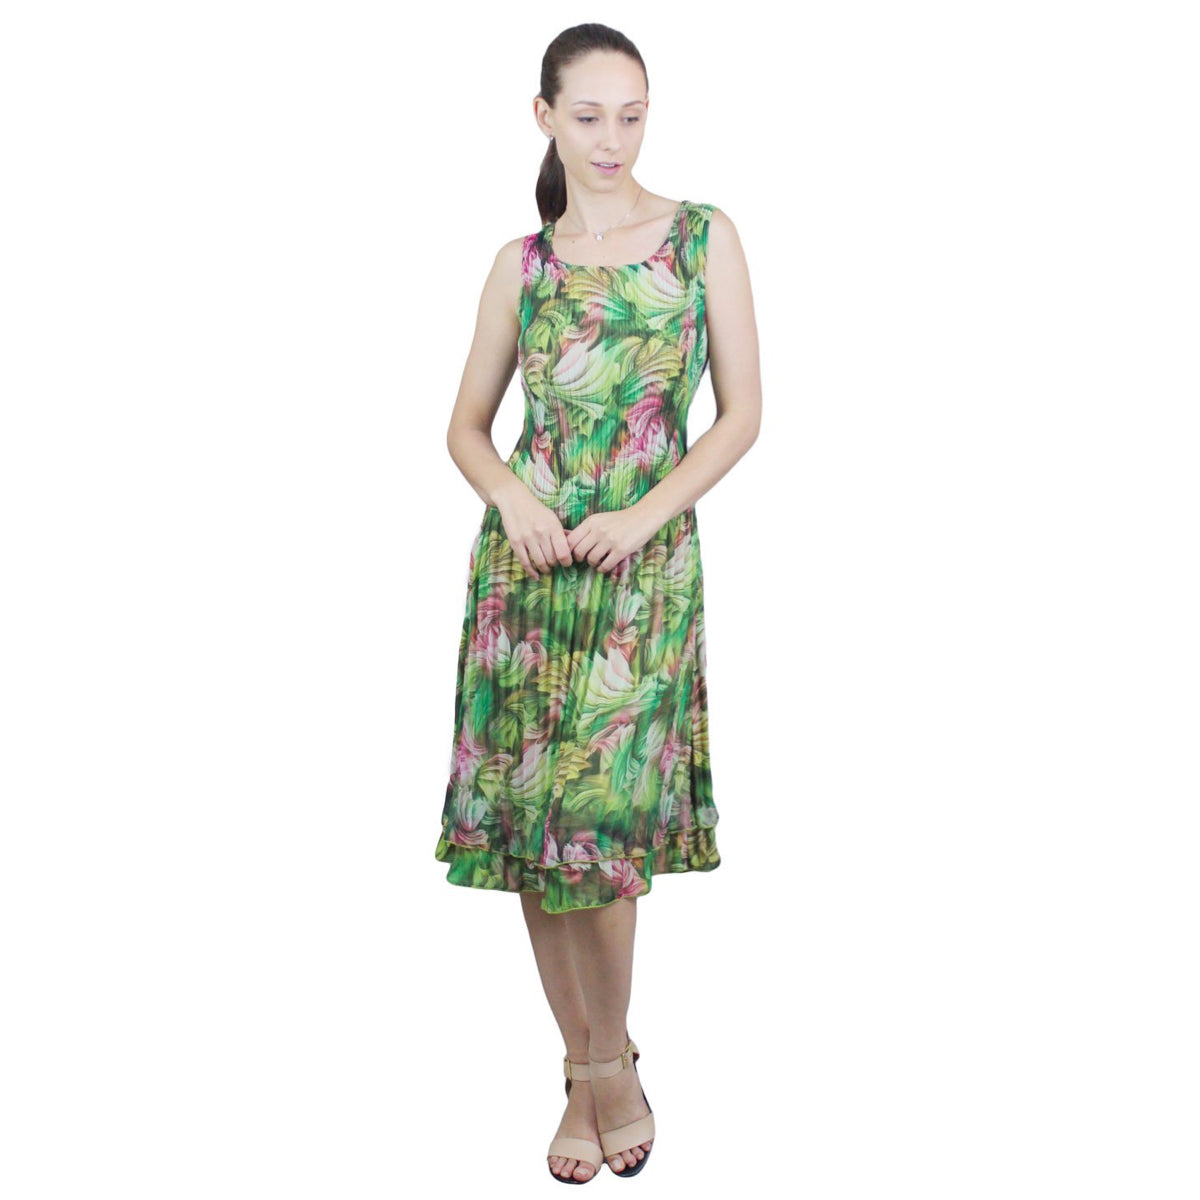 Sleeveless Spring Print Crinkle Dress - Green